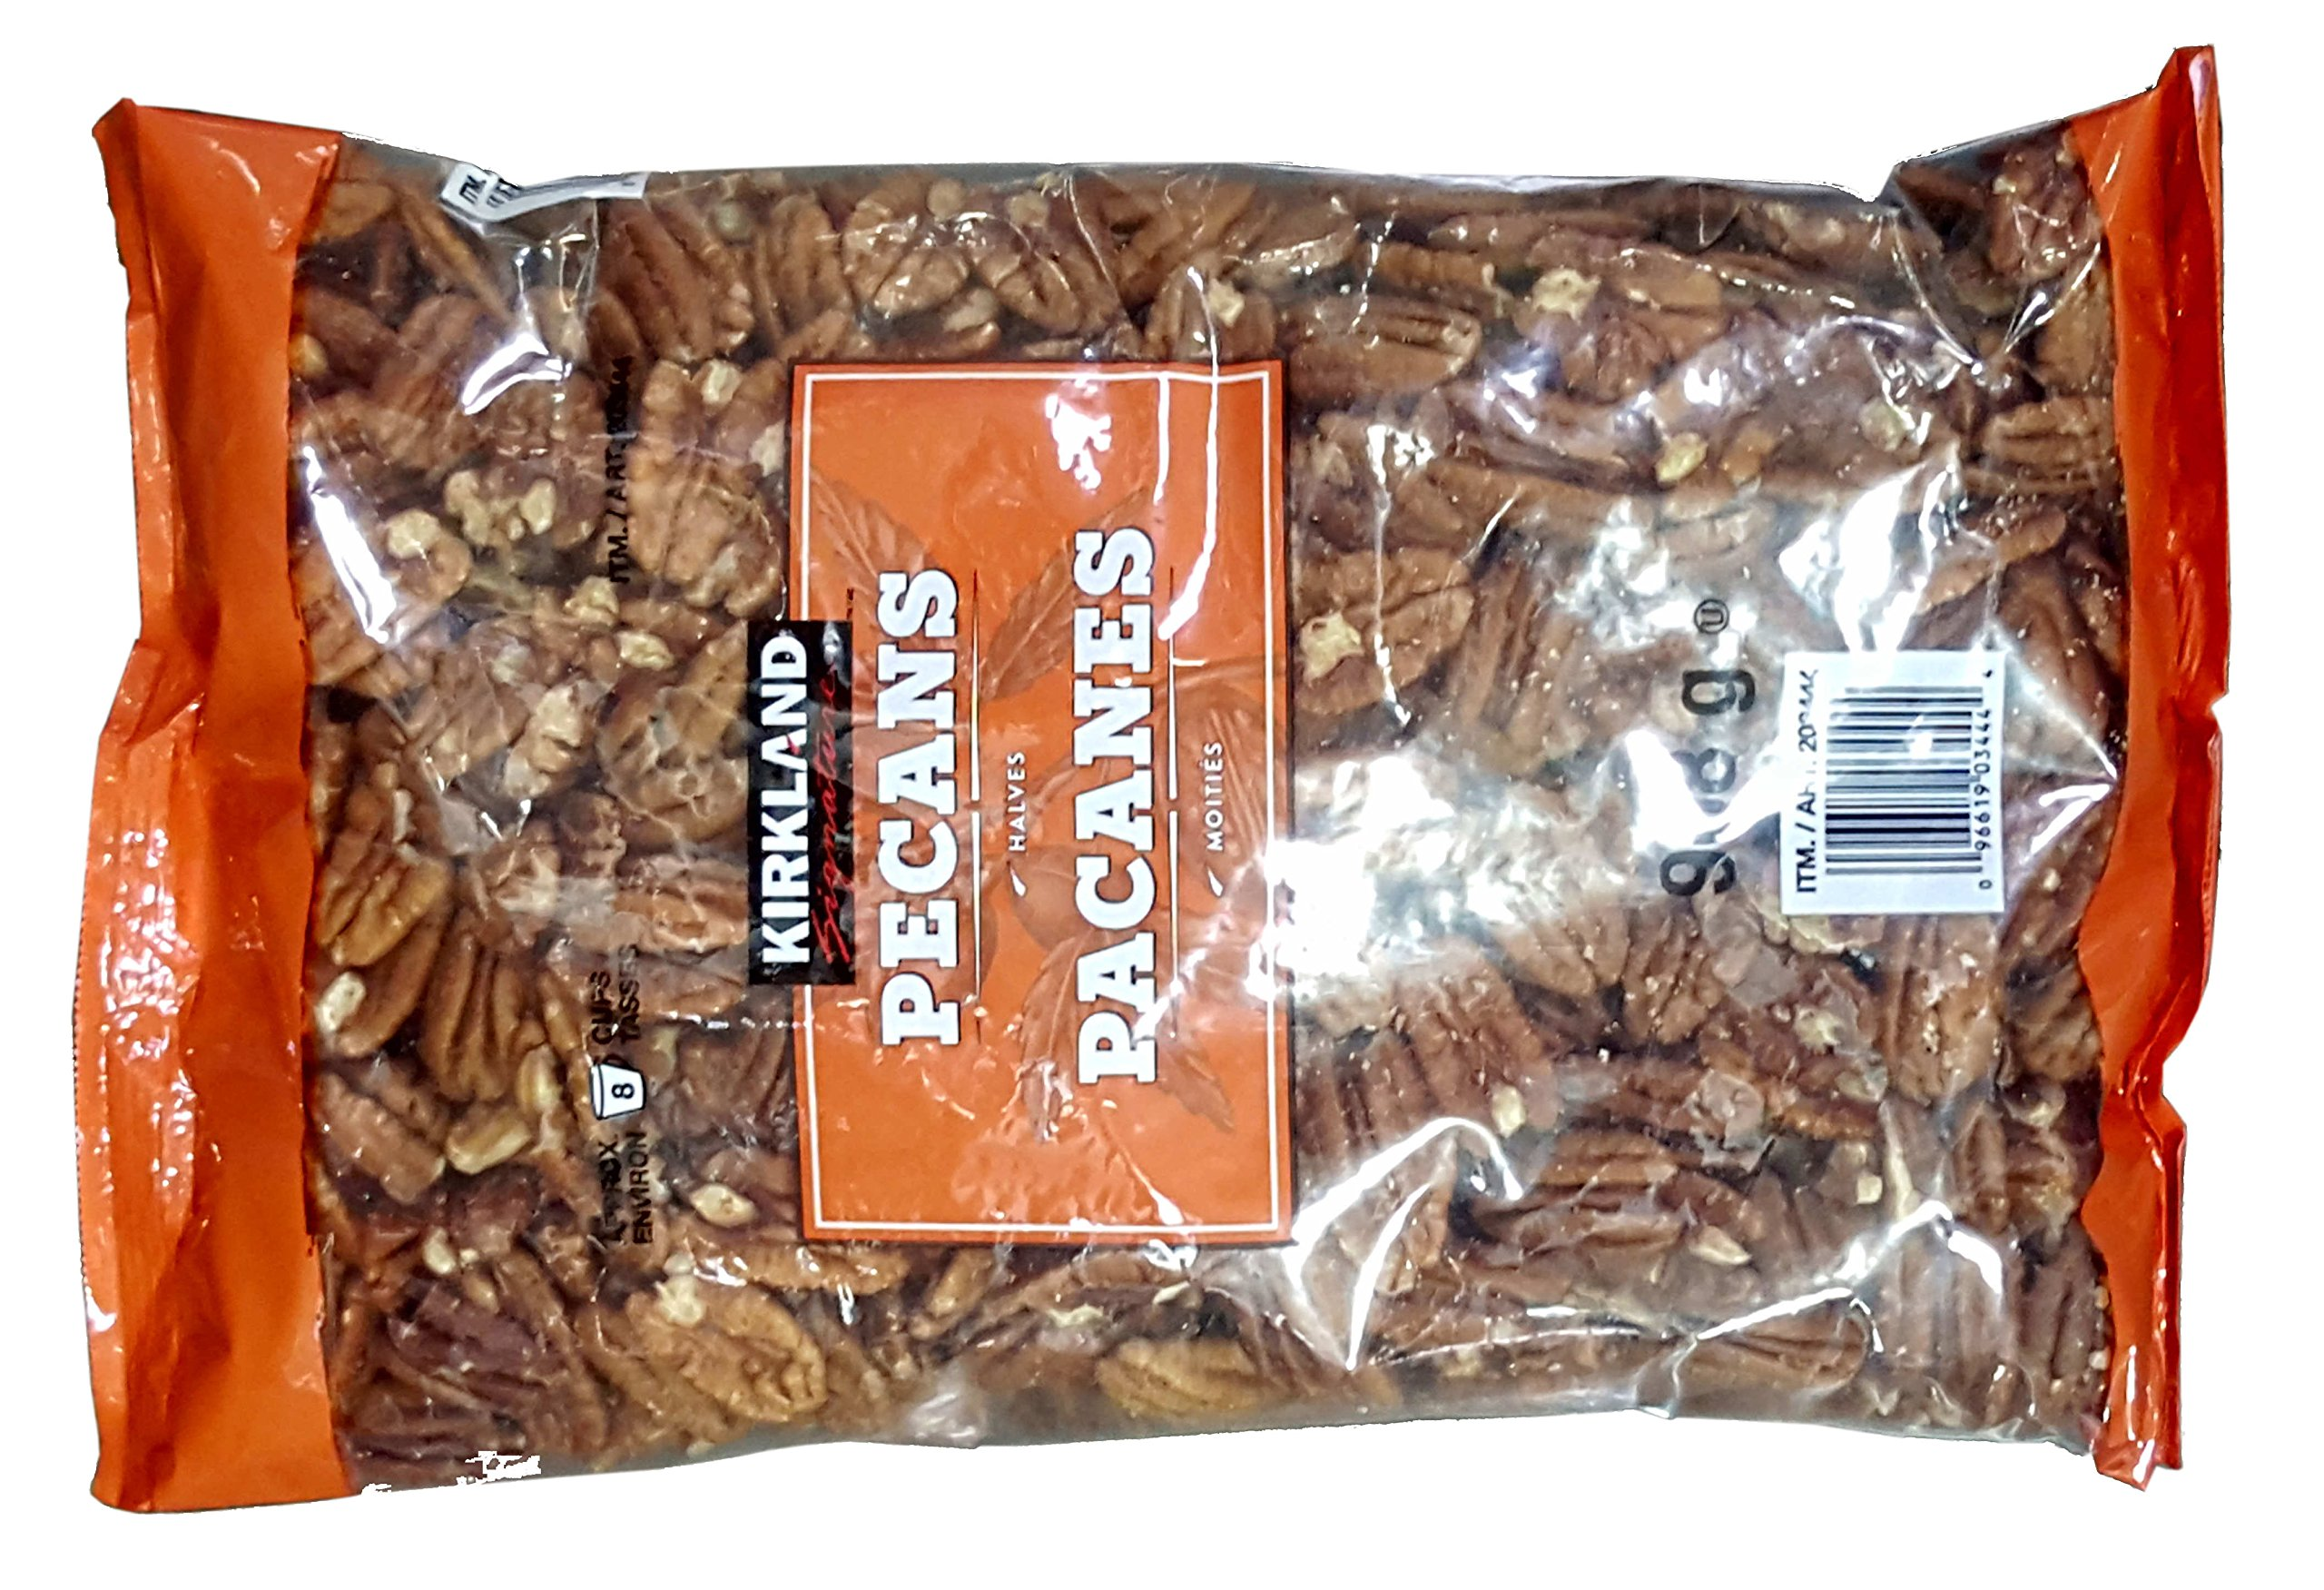 Kirkland Signature Pecan Halves, 2 Pounds